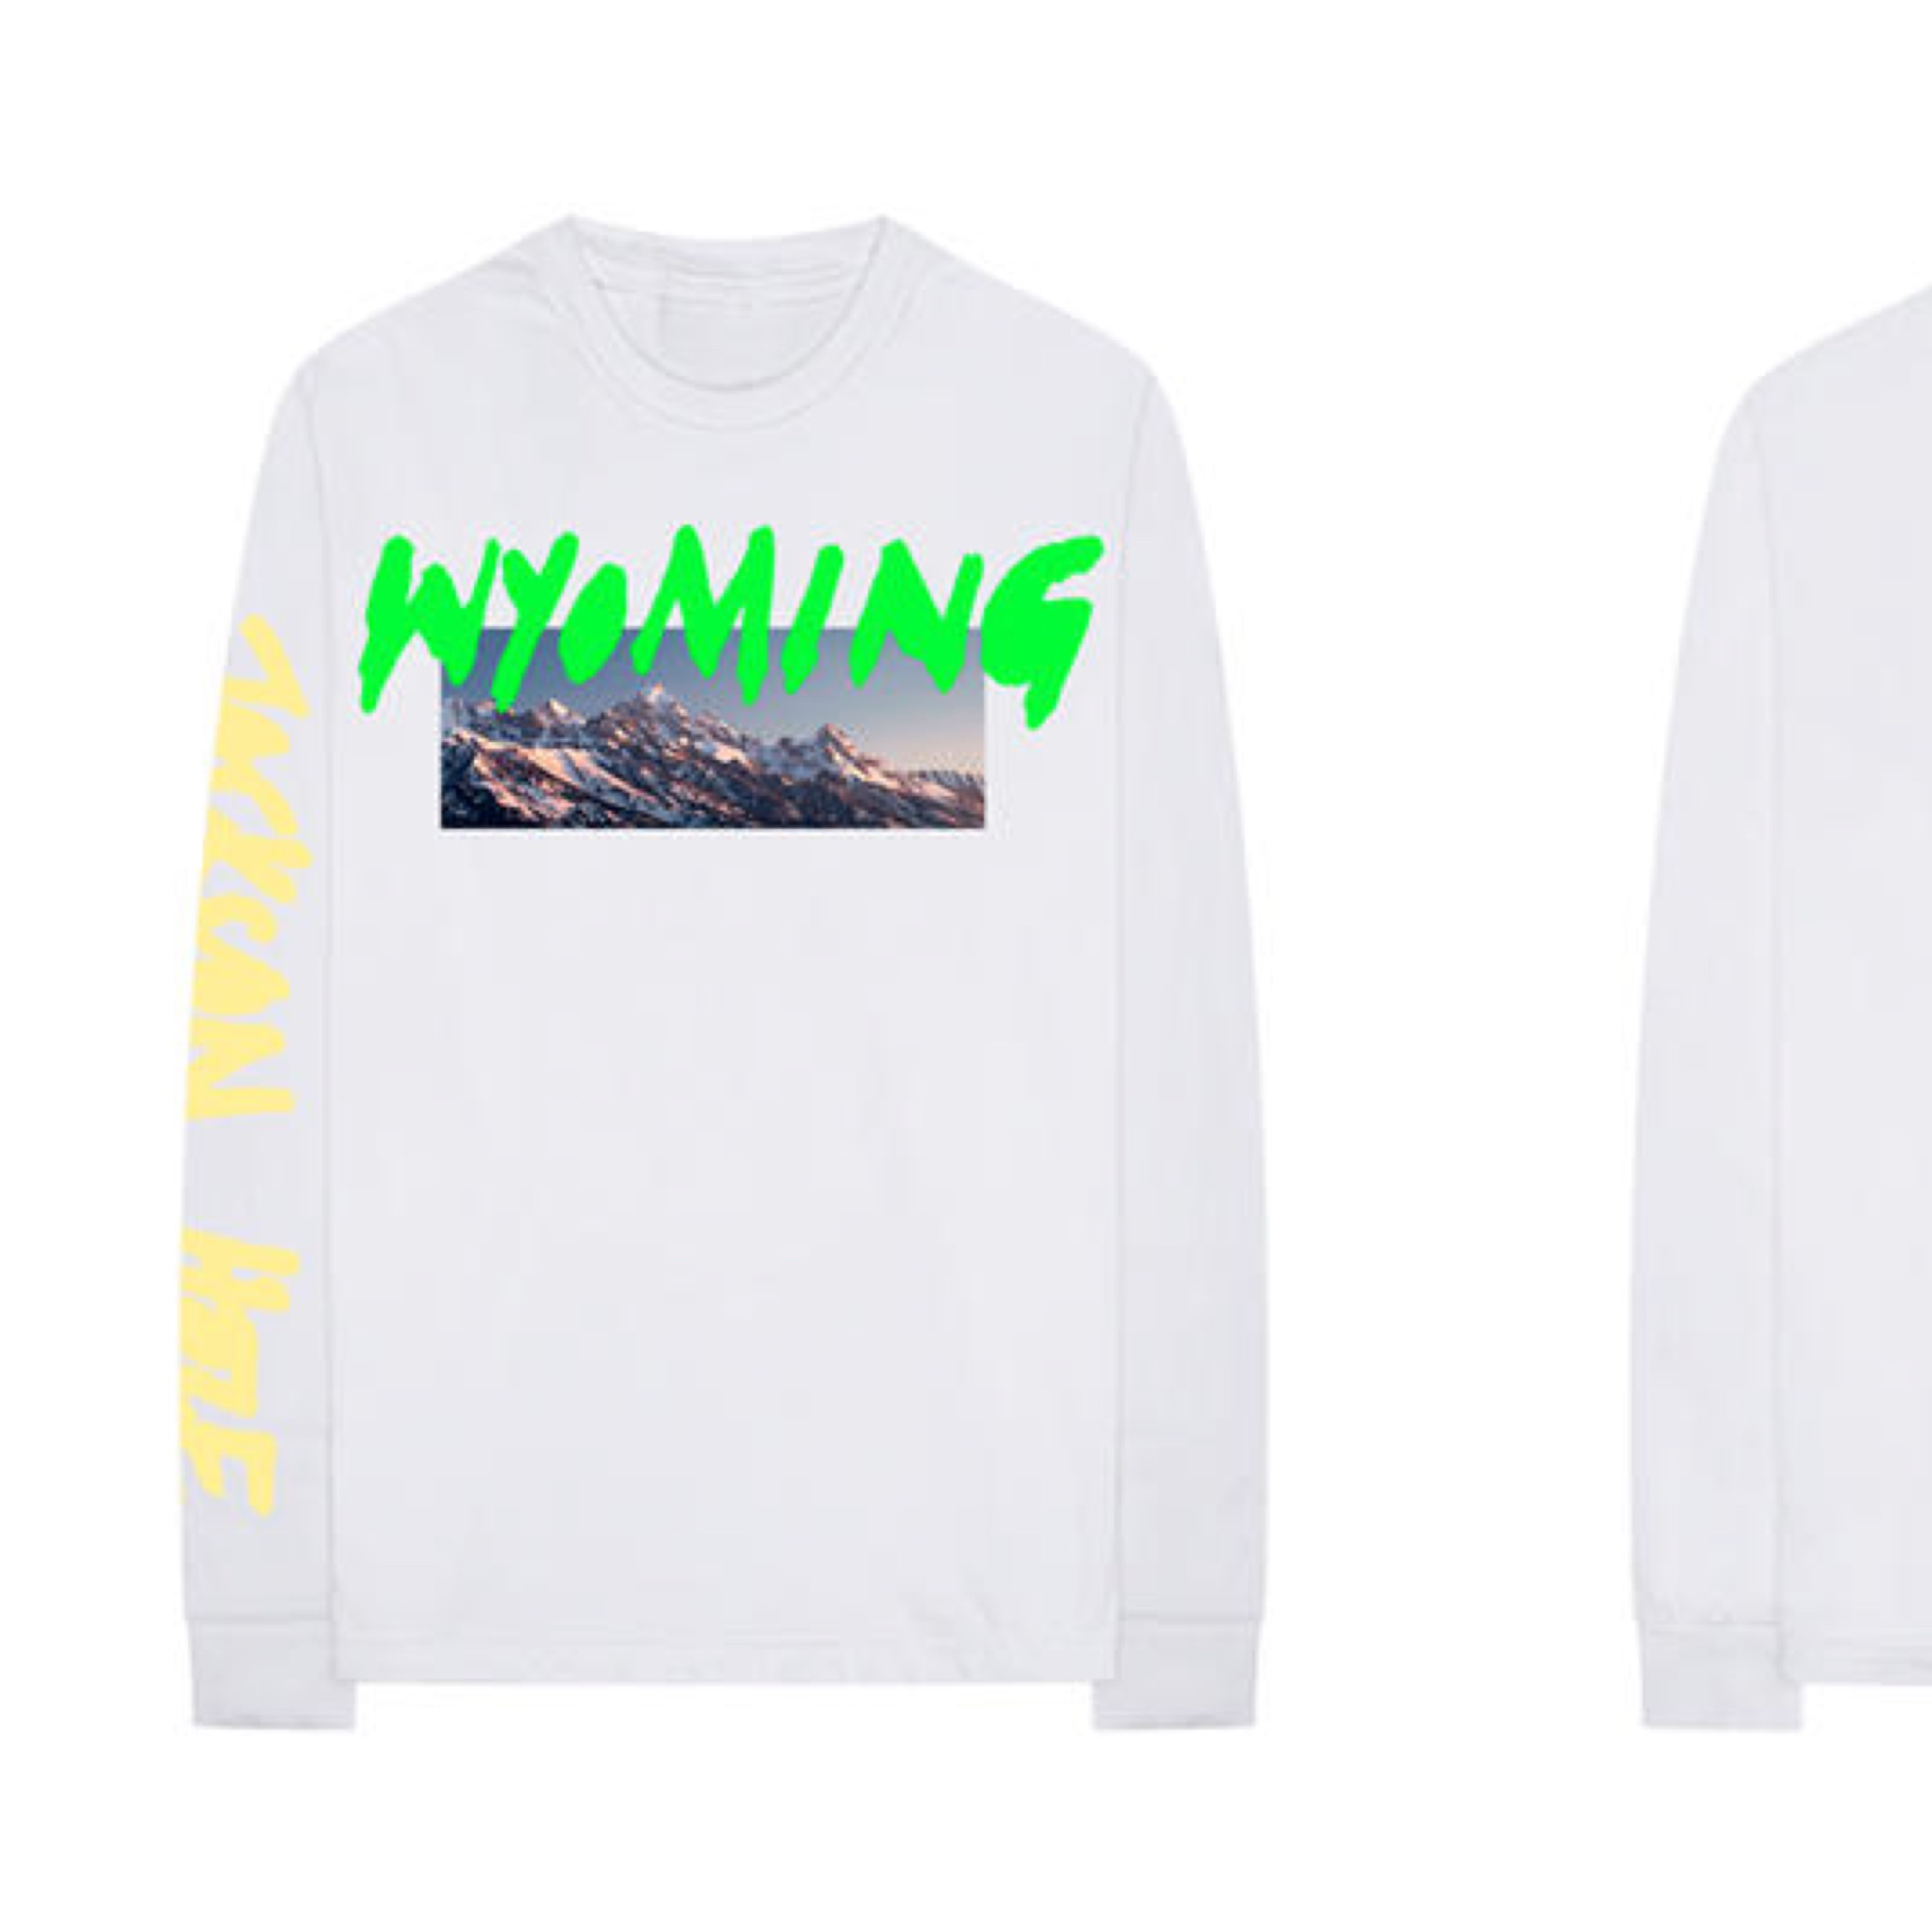 New Kanye West Wyoming Merch Long Sleeve White T